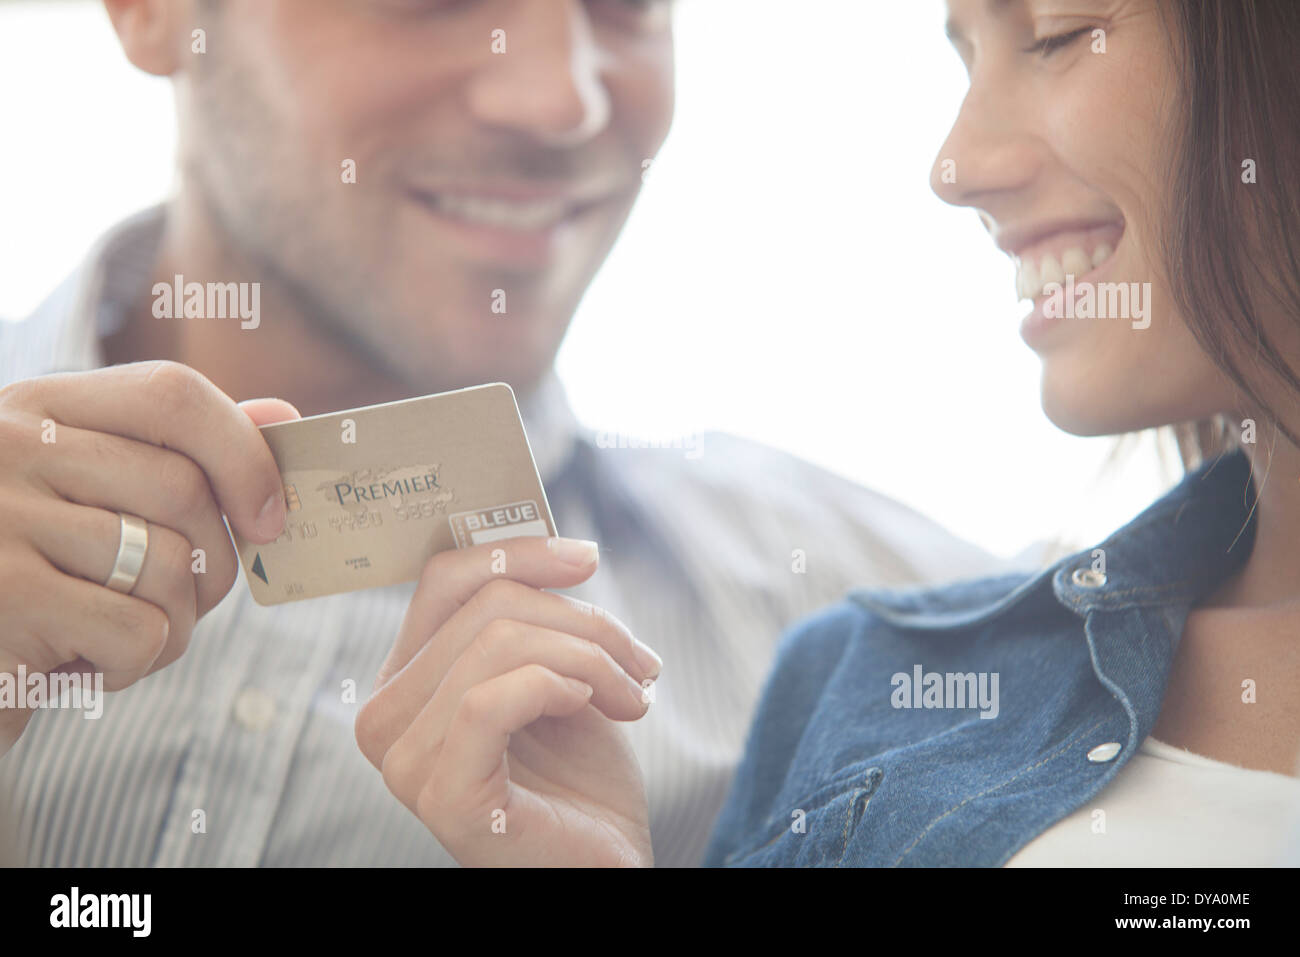 Couple preparing to make credit card purchase - Stock Image